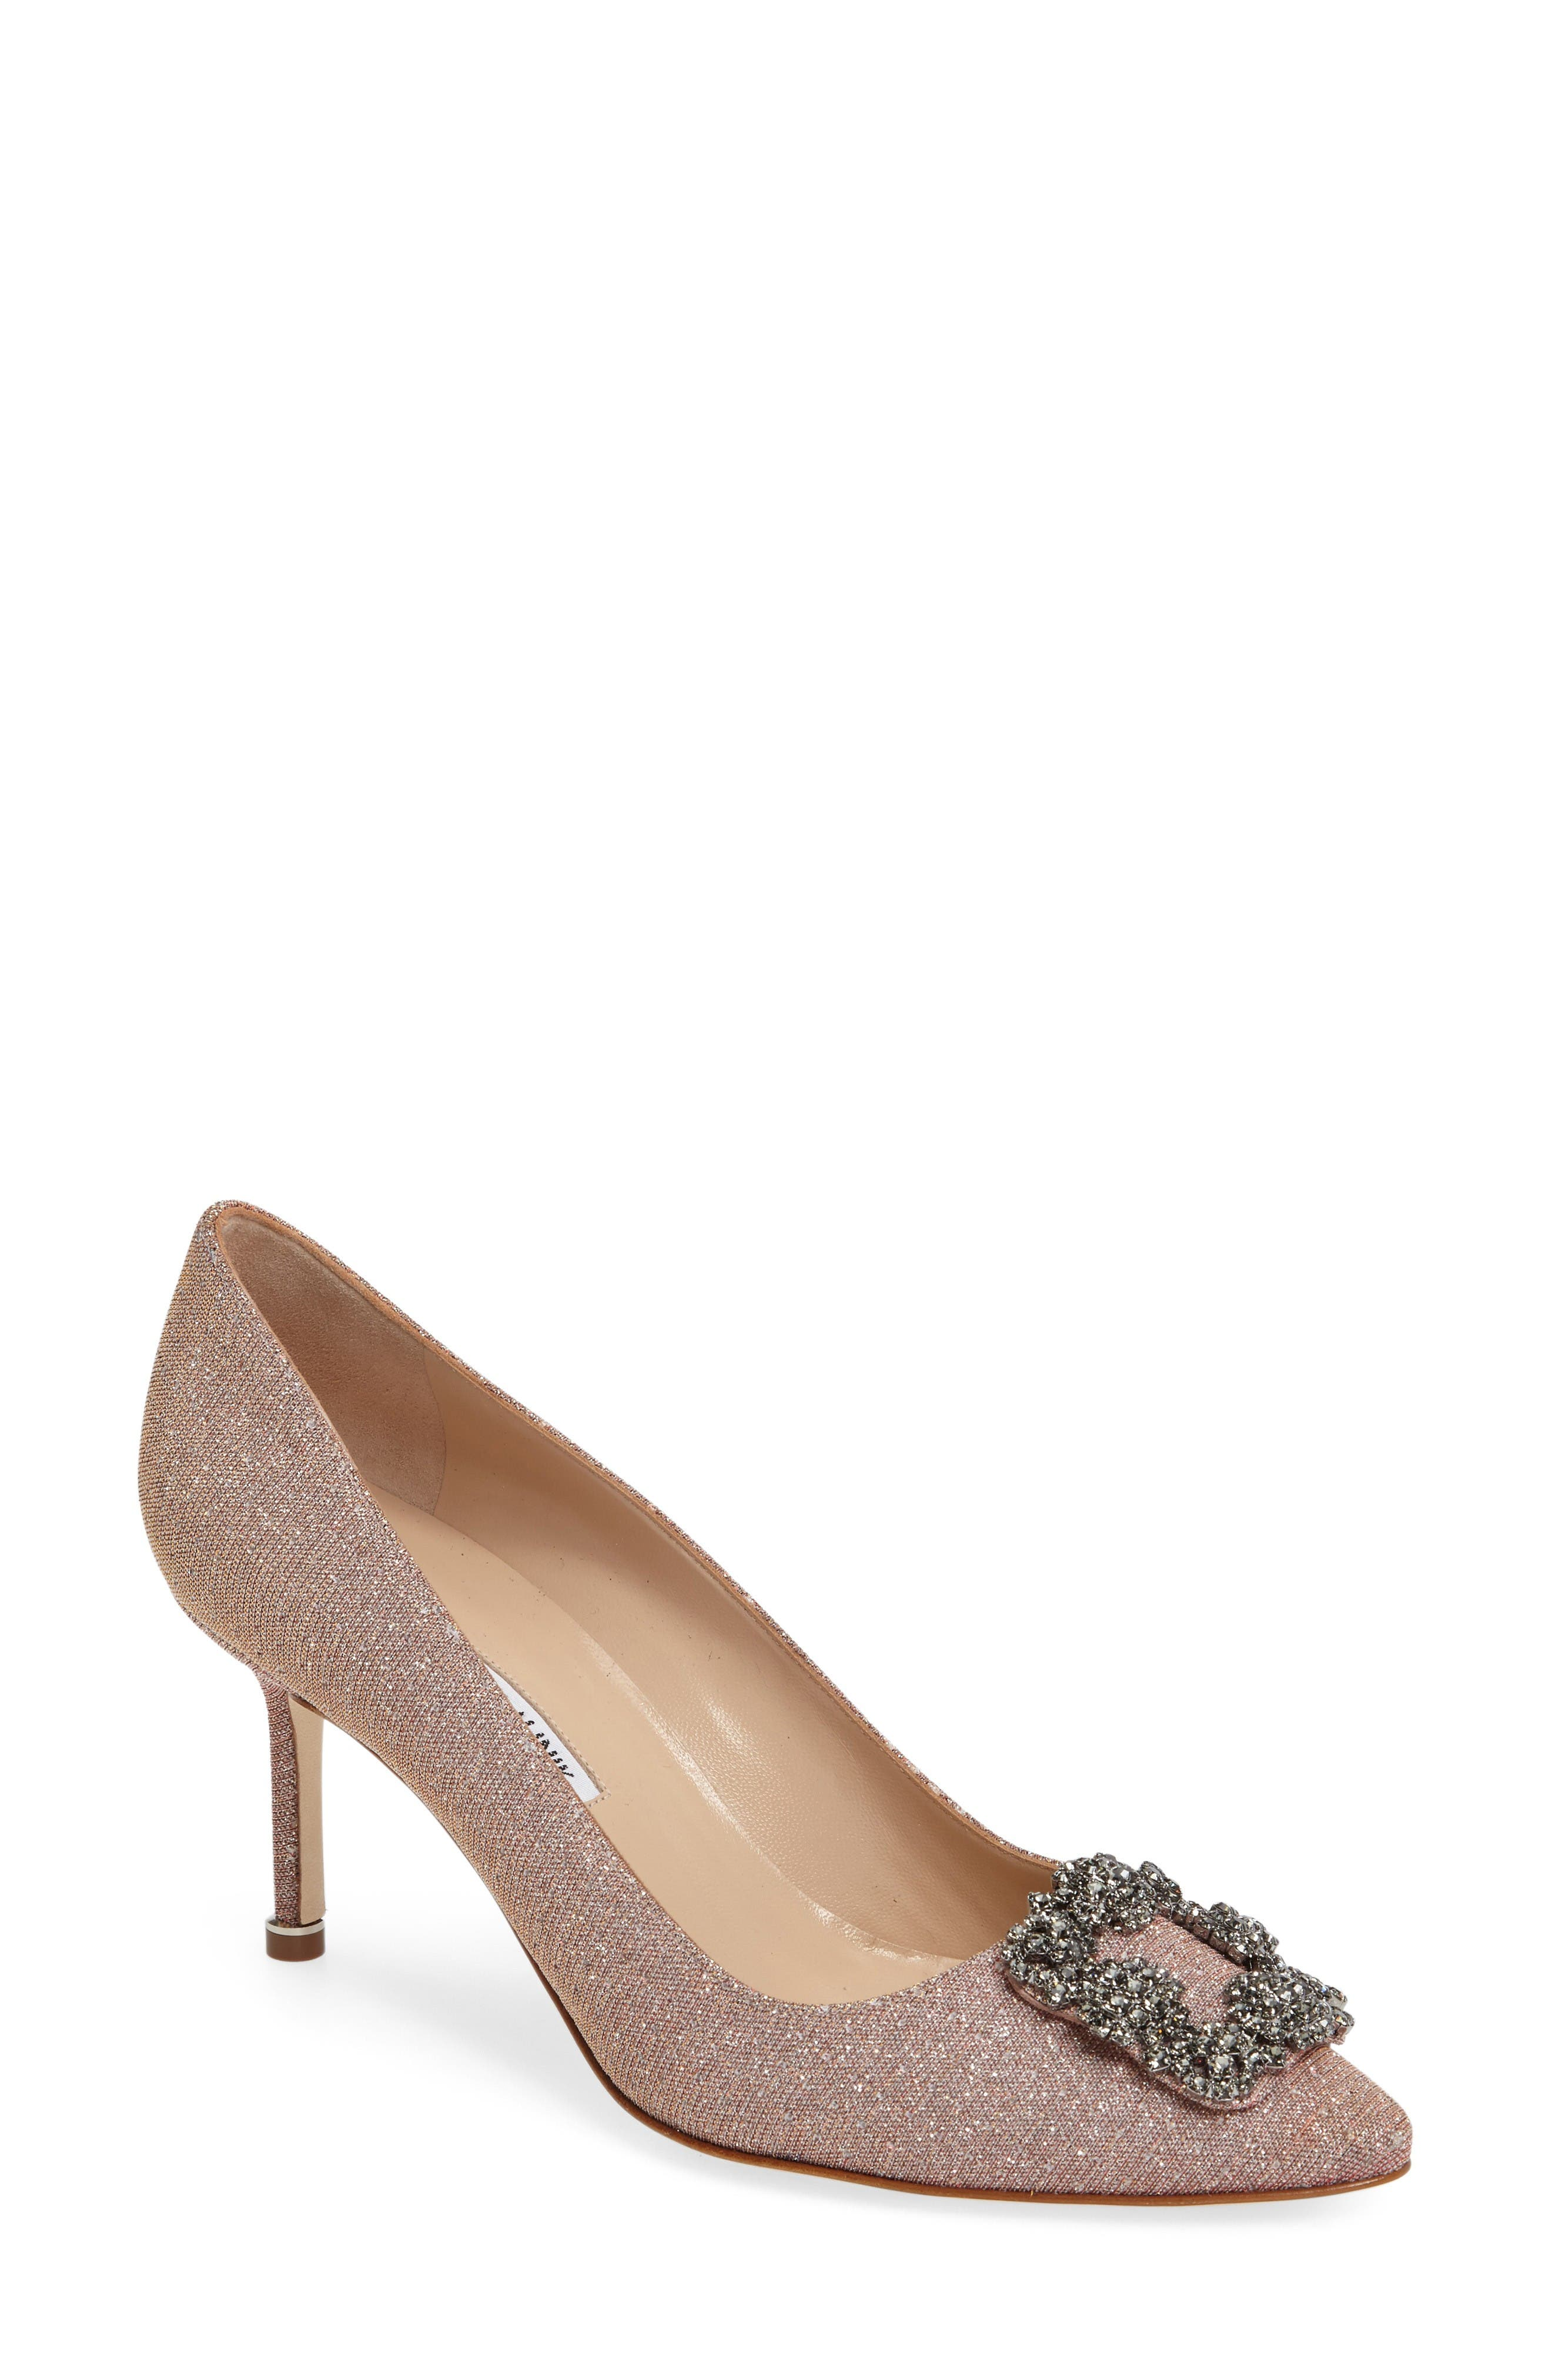 Hangisi Pump,                         Main,                         color, Champagne Fabric